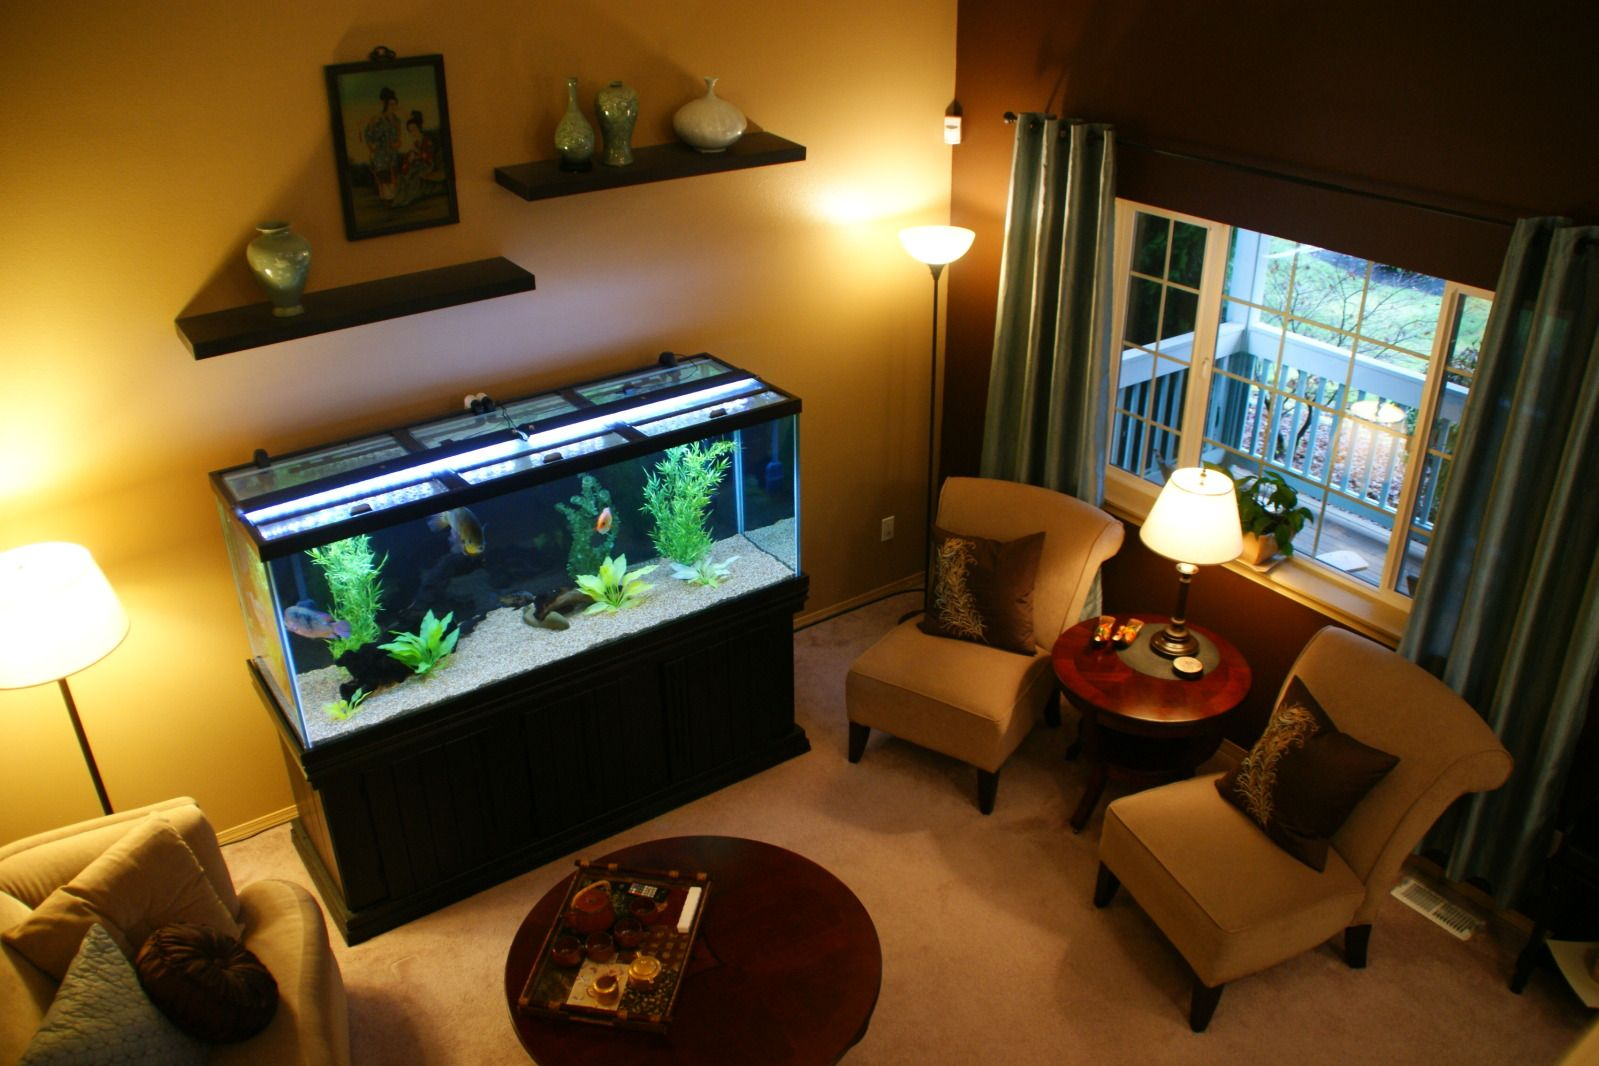 Living Room Decorating Ideas Fish Tank transform the way your home looks using a fish tank | oscar fish